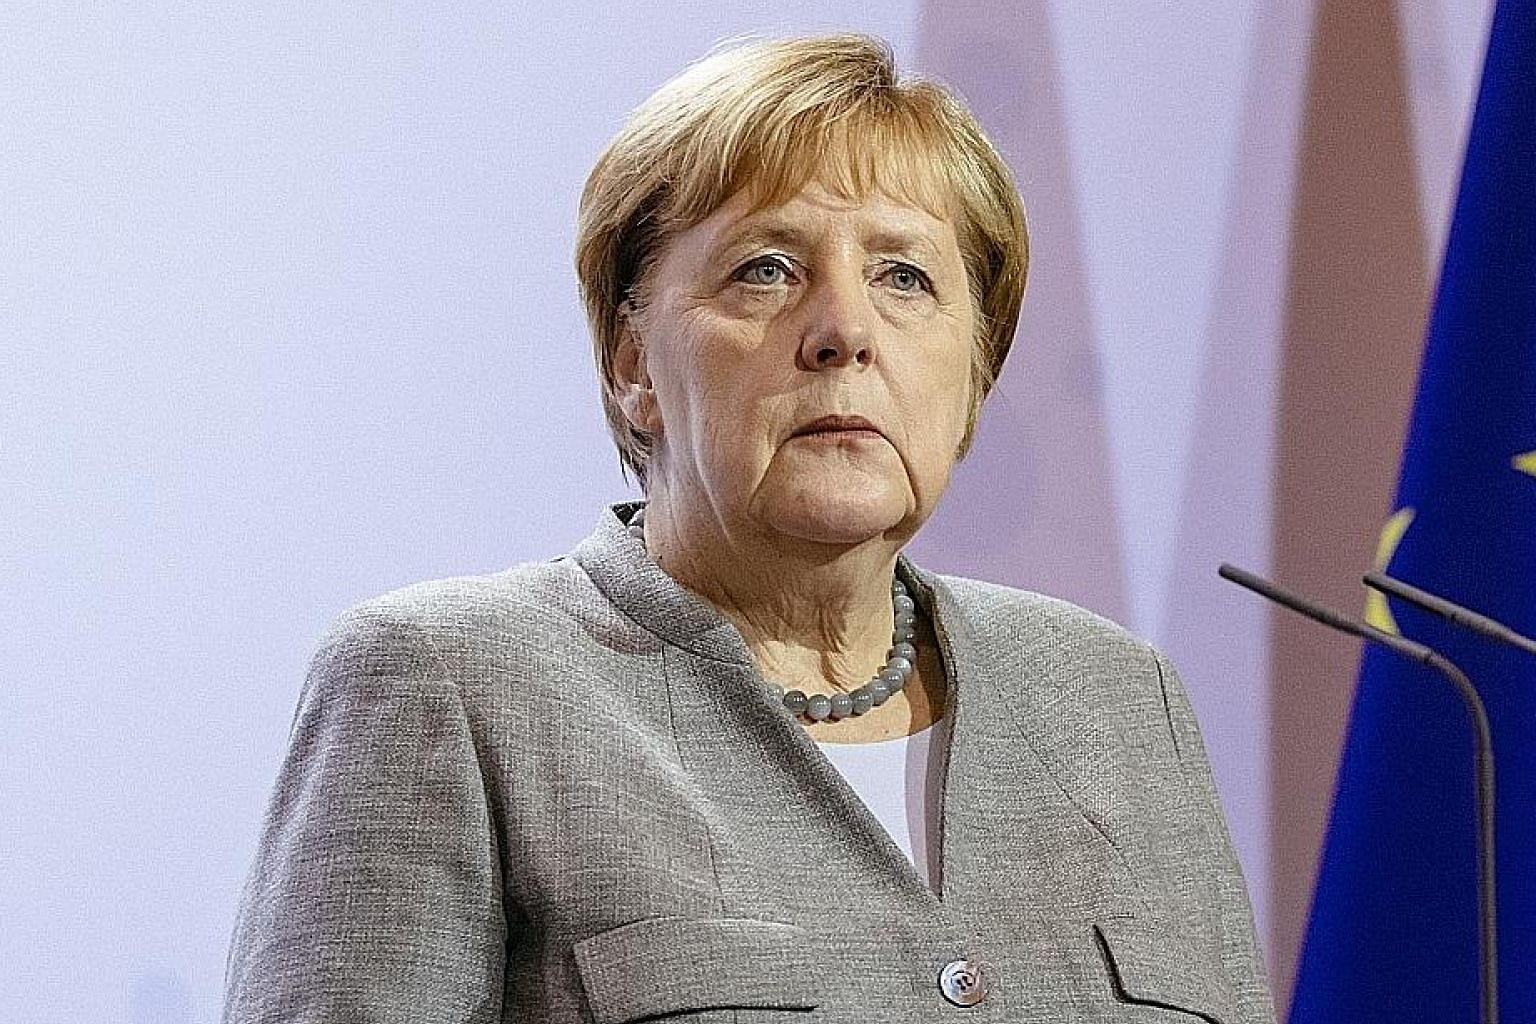 Never before has criticism against Dr Angela Merkel, who has been in power since 2005, been so vocal, says the writer.